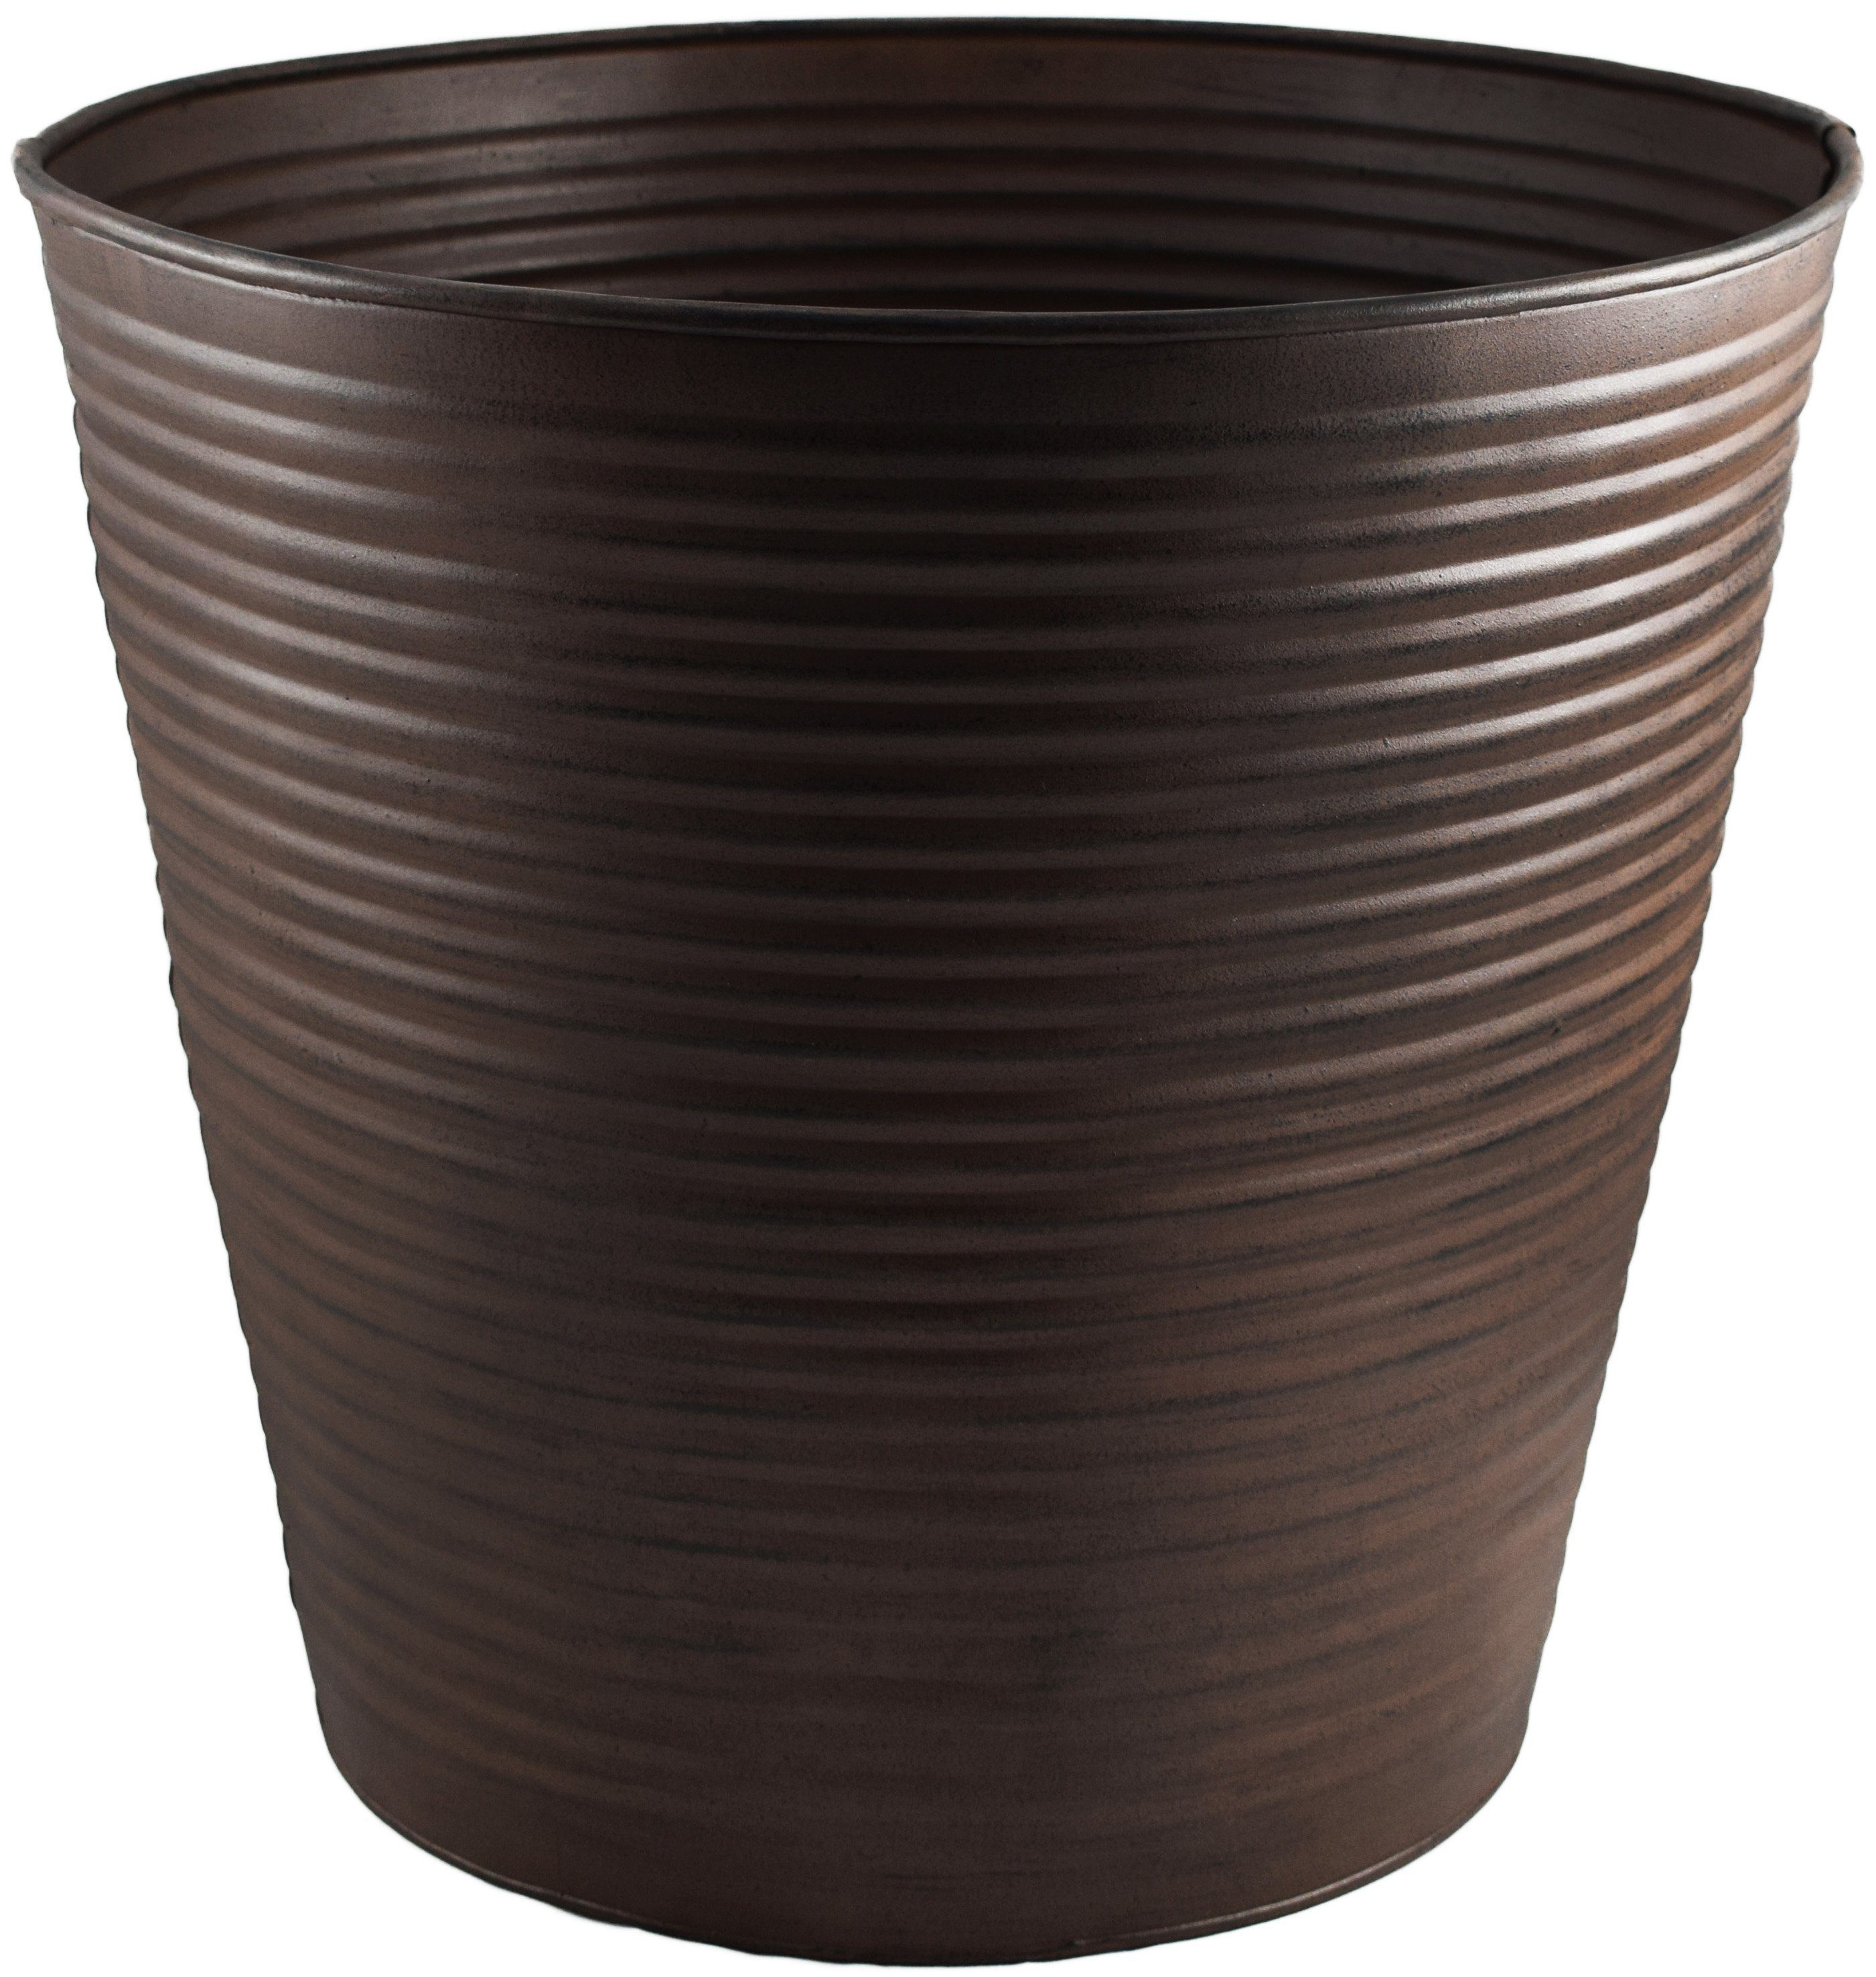 32cm Ribbed Planter for Christmas Trees from Pines and Needles